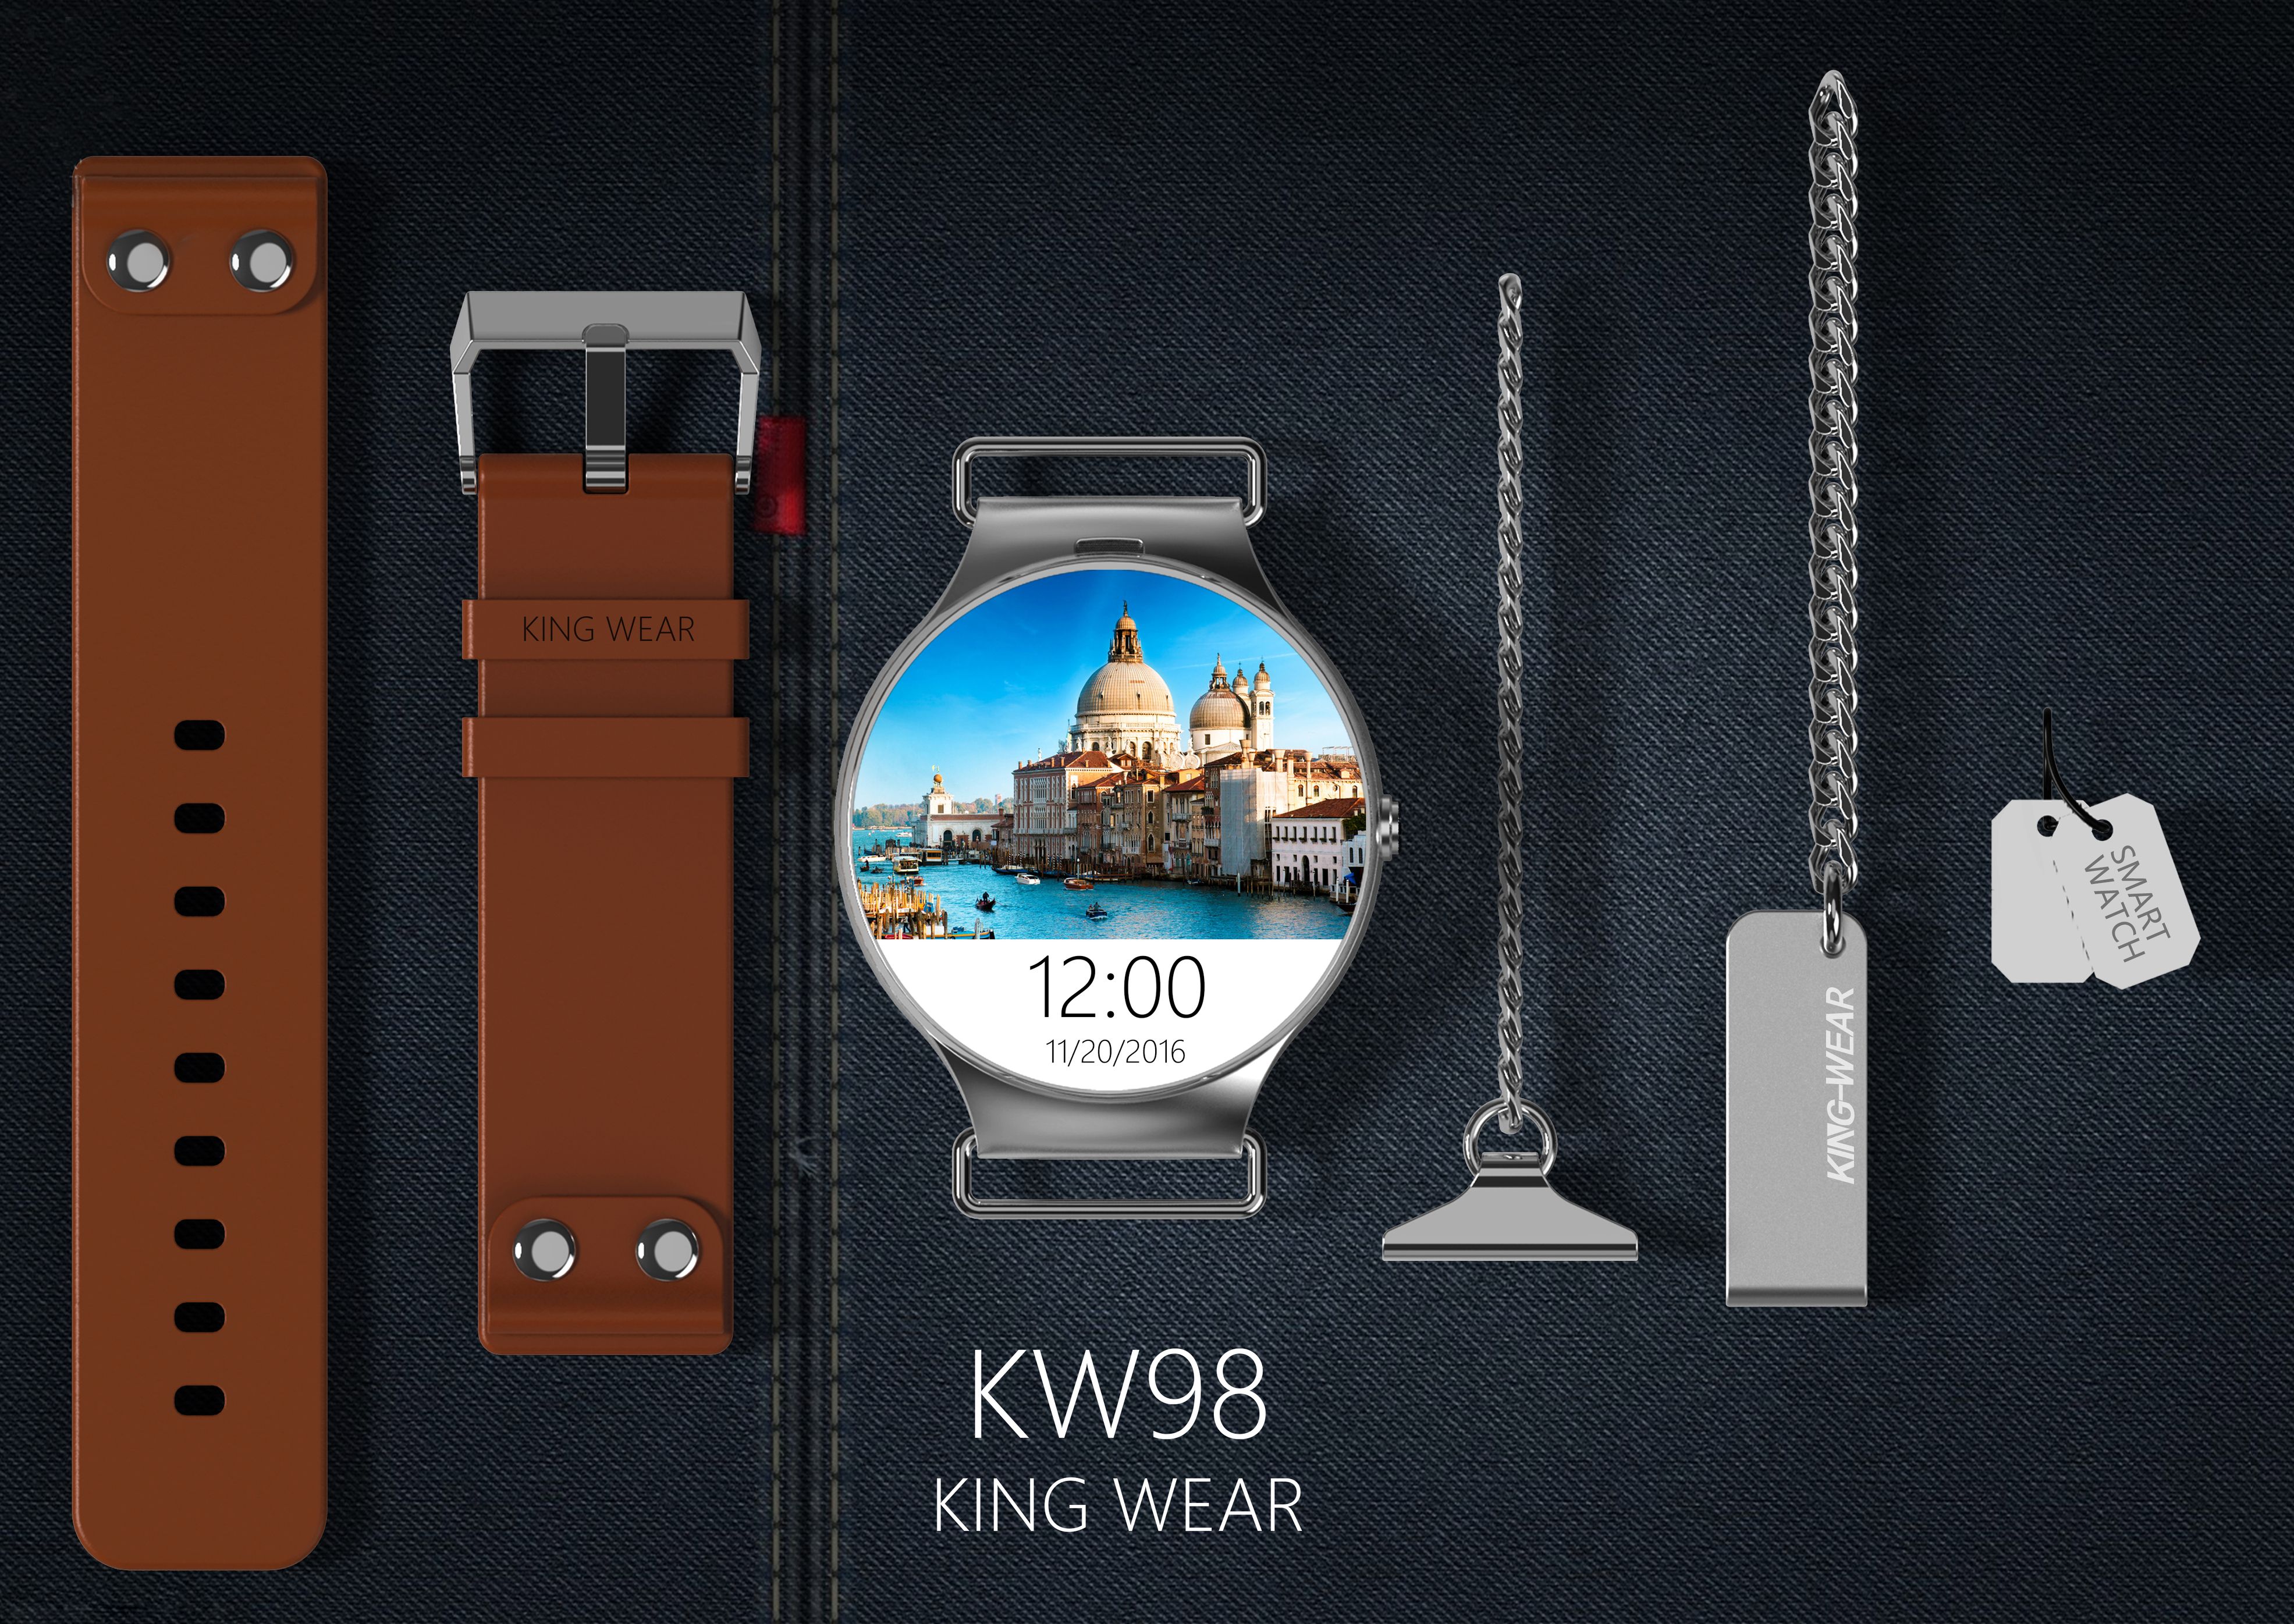 KingWear KW98 new watch coming soon! see you next month